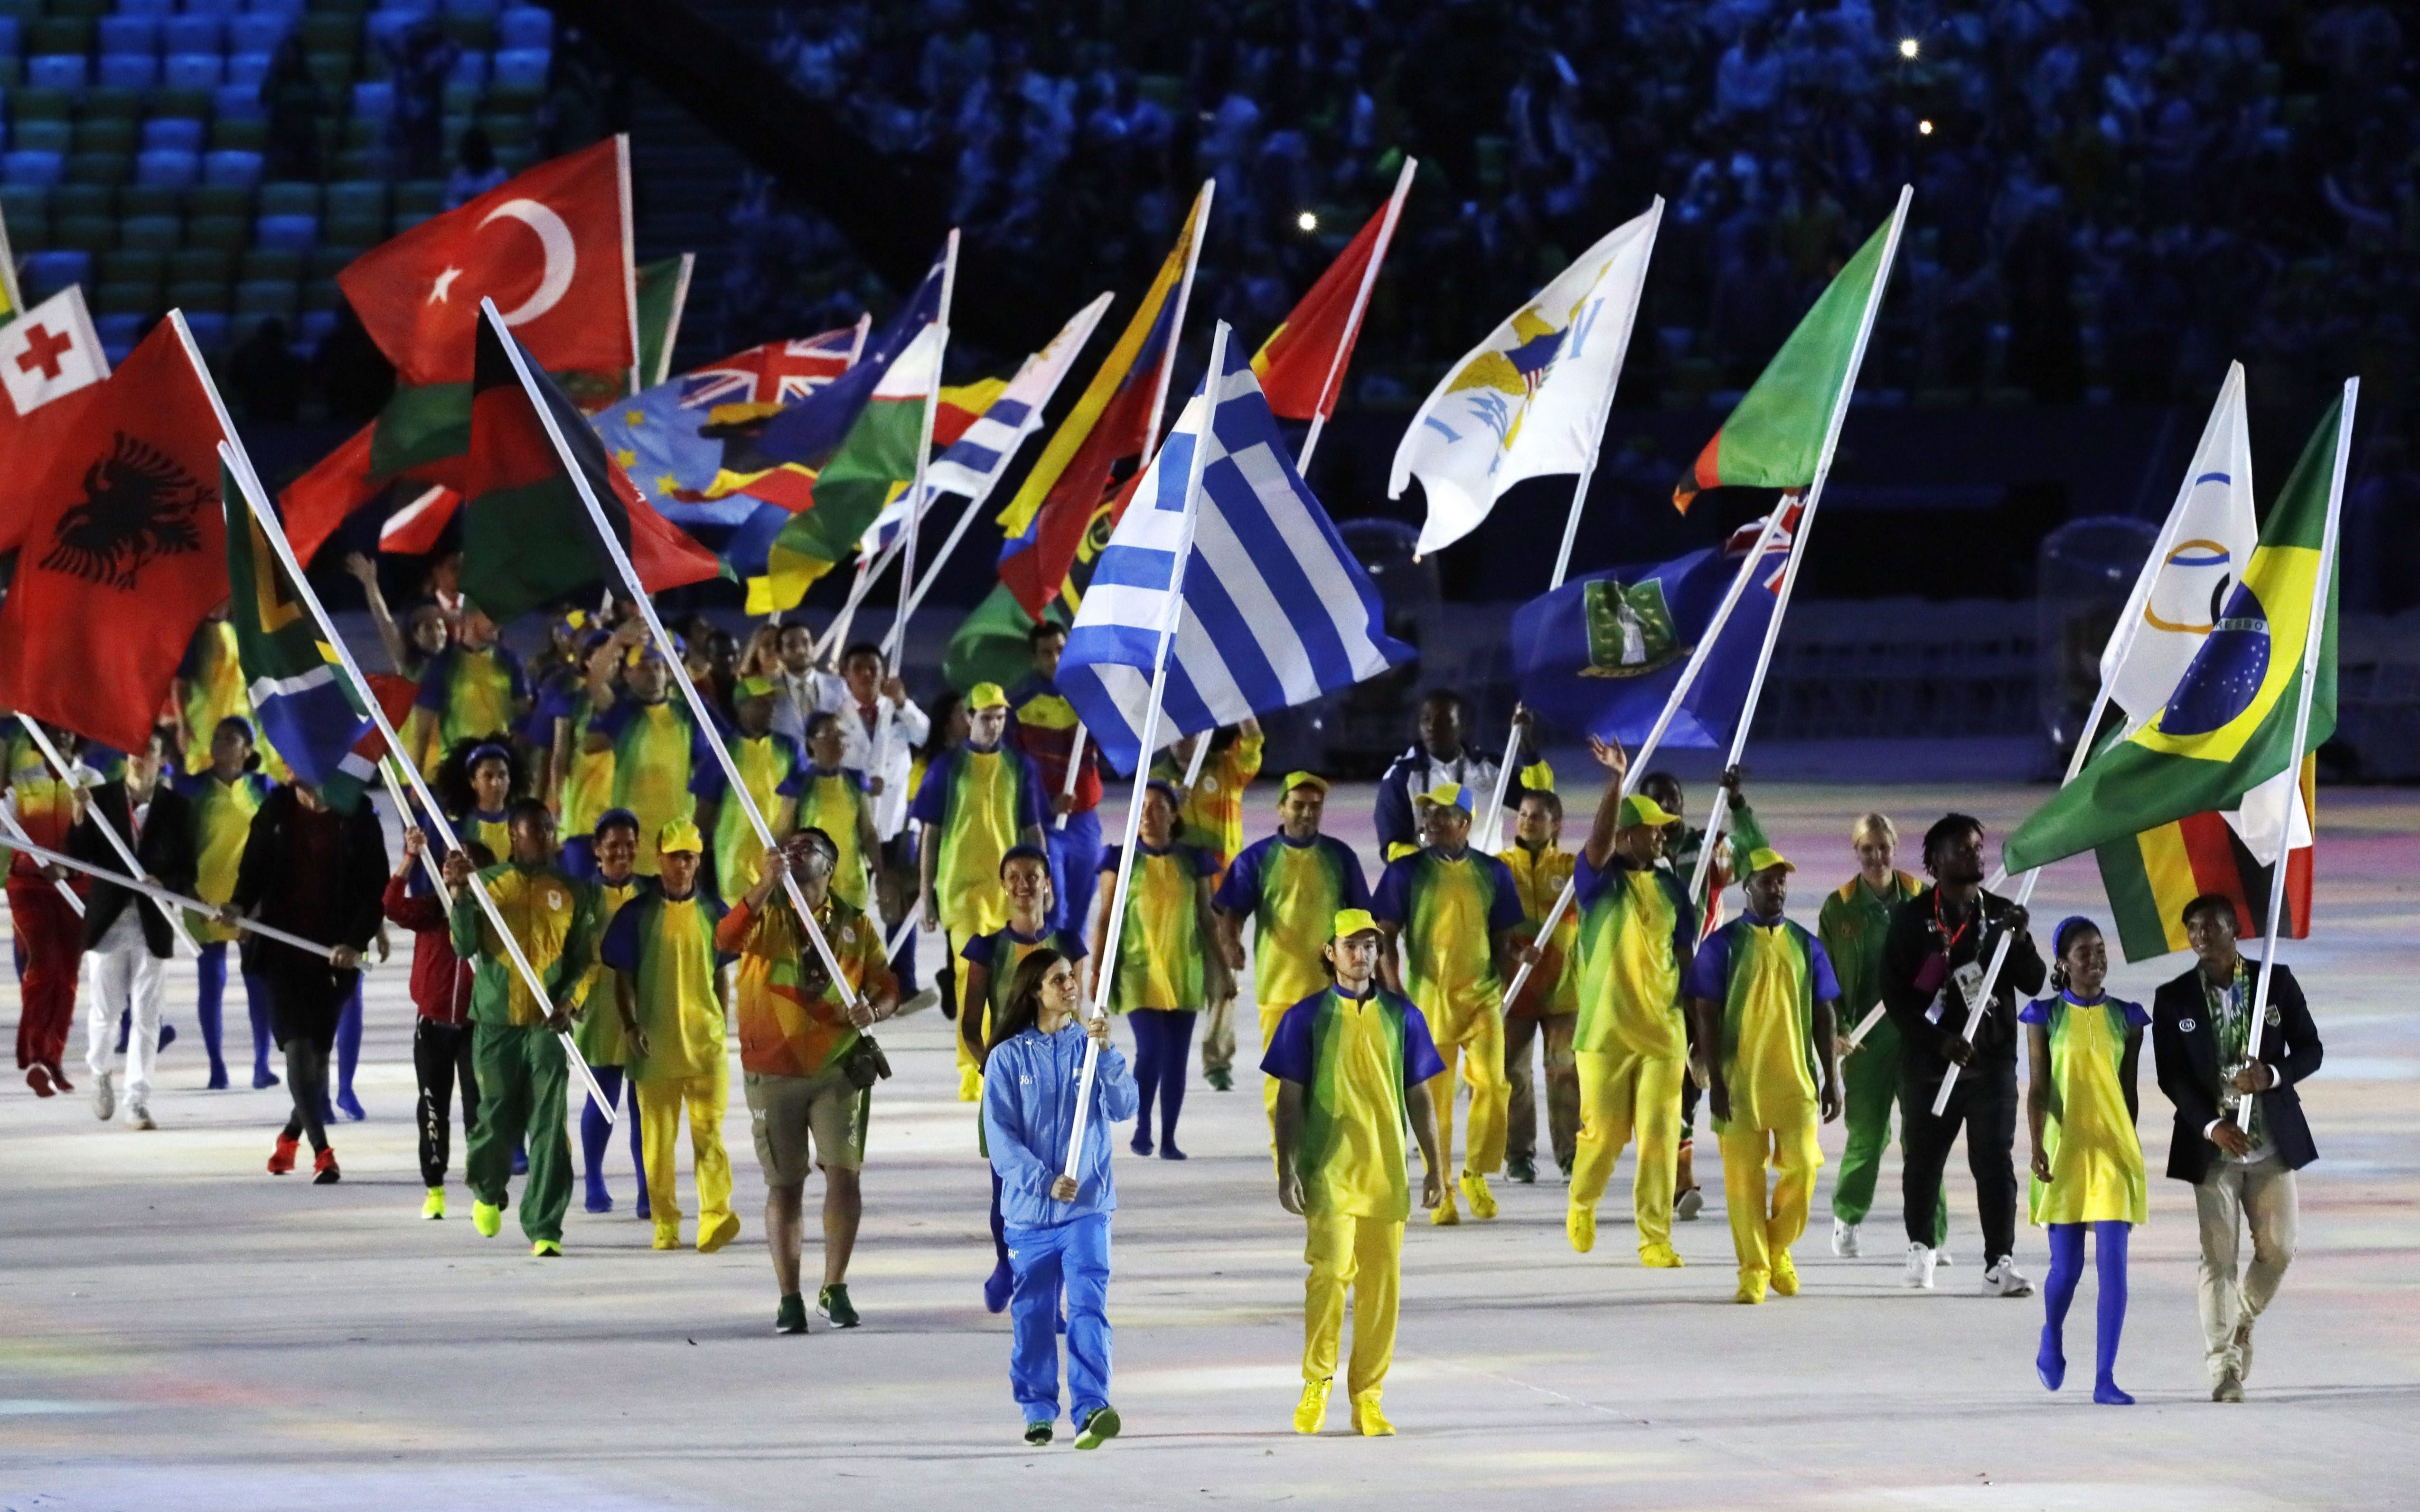 Flags are carried into the closing ceremony in the Maracana stadium at the 2016 Summer Olympics in Rio de Janeiro, Brazil, Sunday, Aug. 21, 2016. (AP Photo/Mark Humphrey)